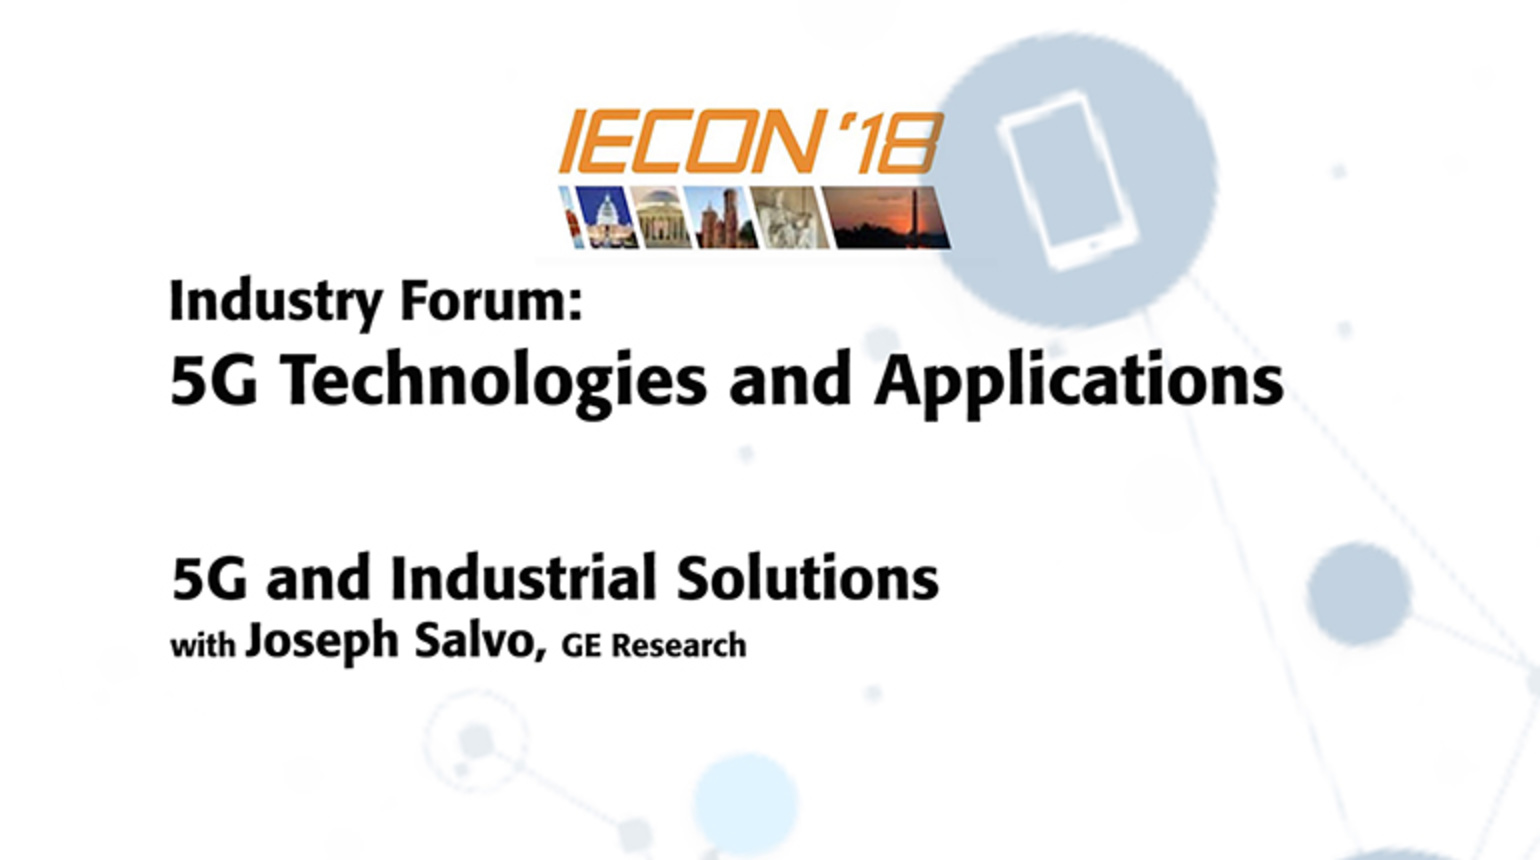 Industry Forum: 5G Technologies and Applications, Joseph Salvo - IECON 2018